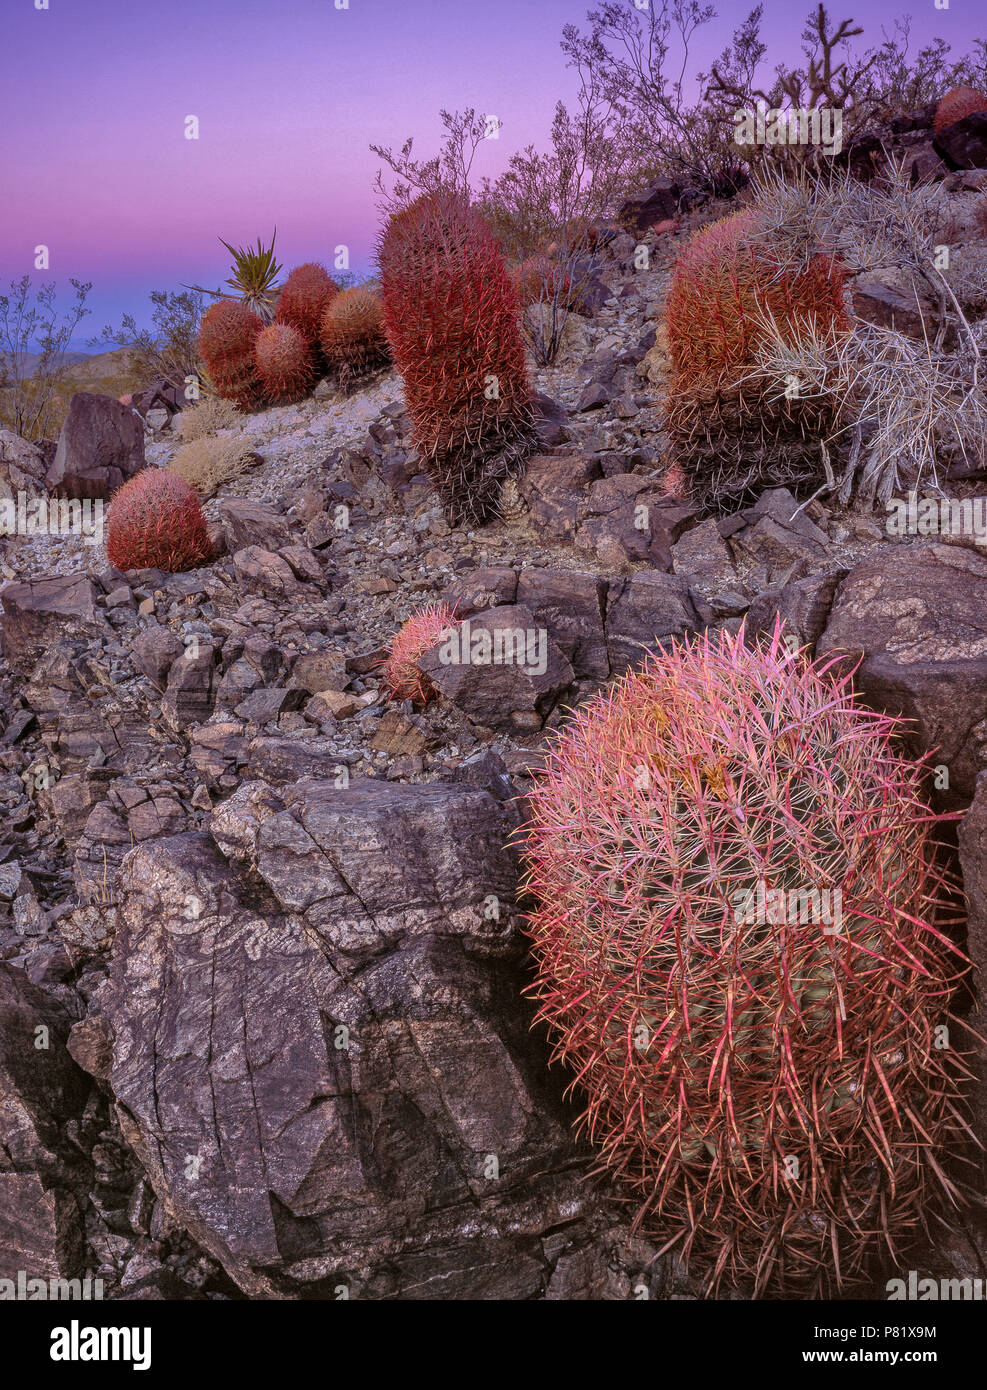 Dawn, Cottontops, Echinocactus polycephalus, Indian Springs, Mojave National Preserve, California - Stock Image